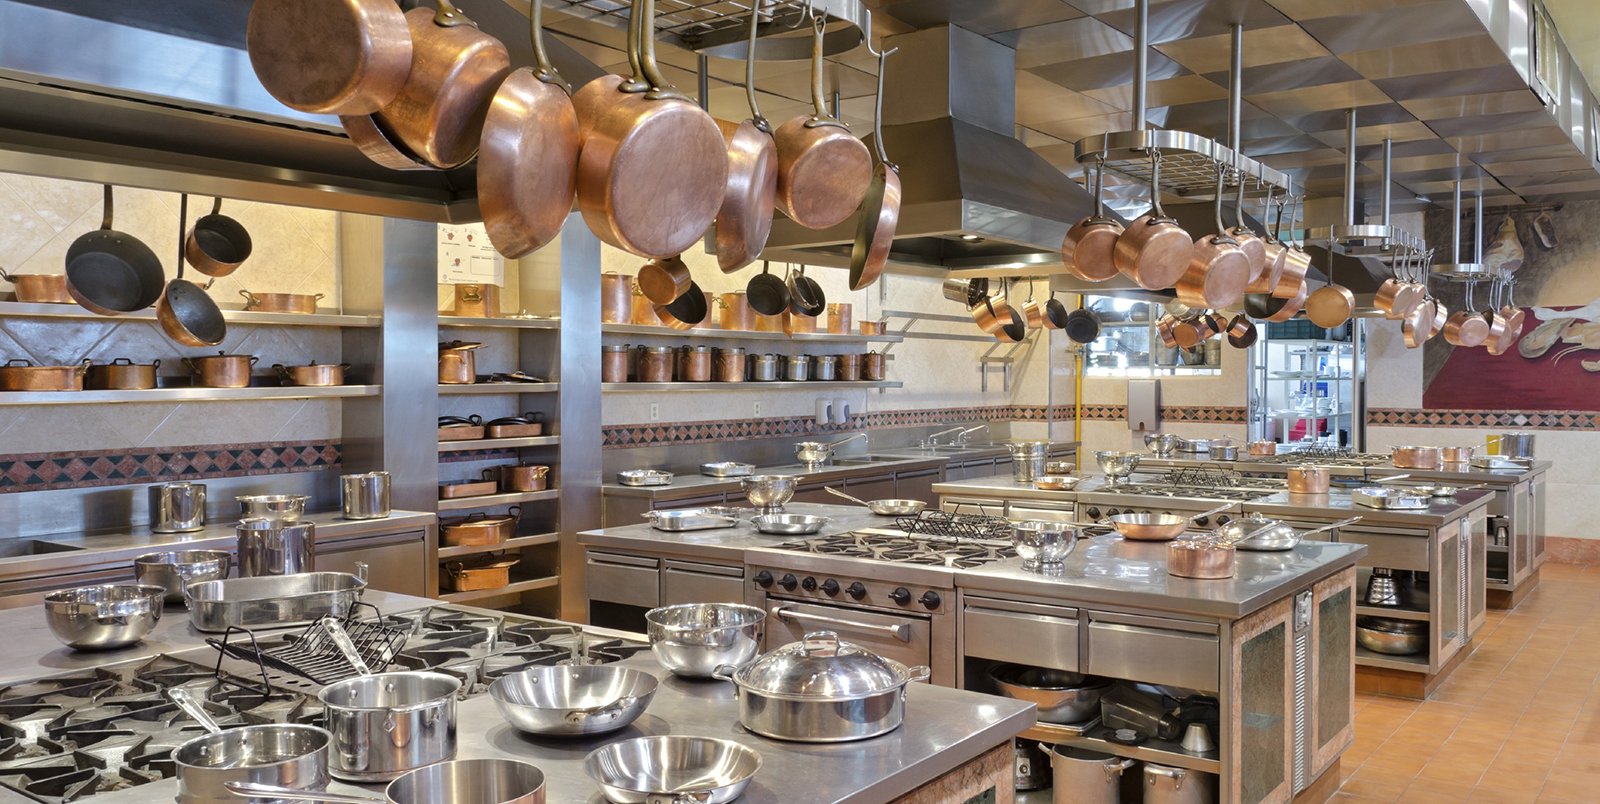 Andy Catering Equipment London | Catering Equipment and Appliances